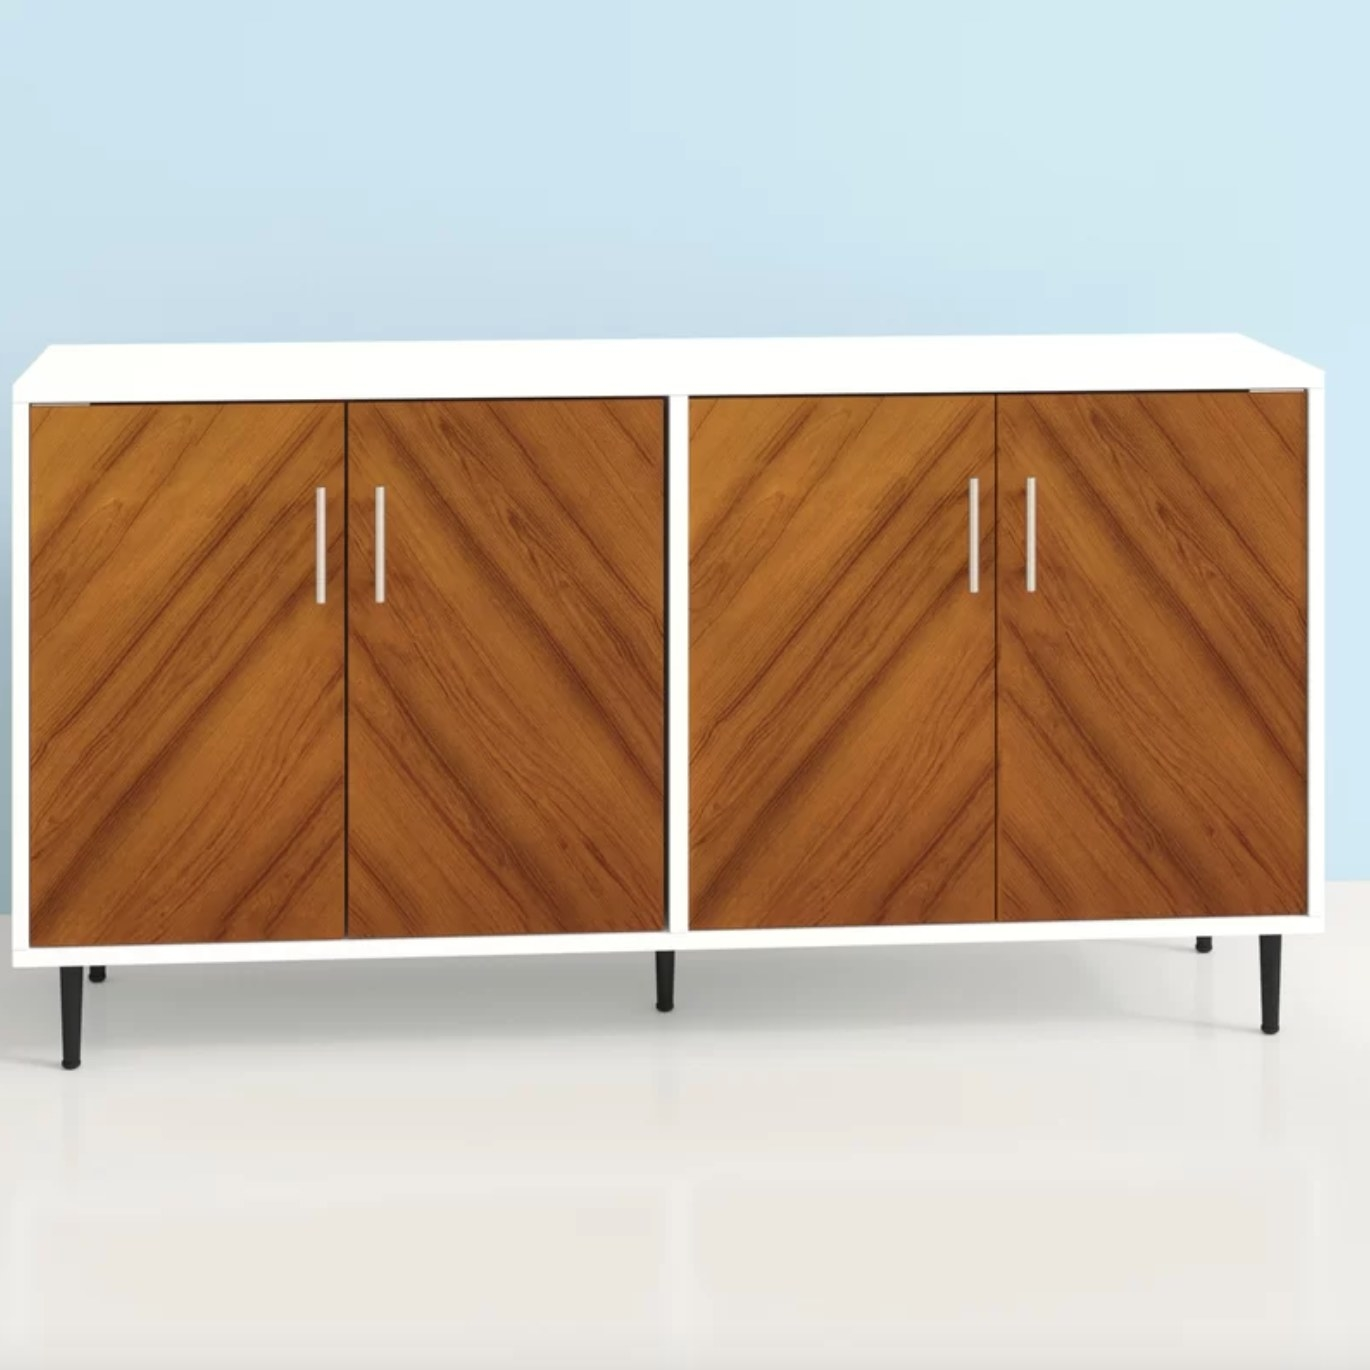 The wide sideboard in acorn/ white